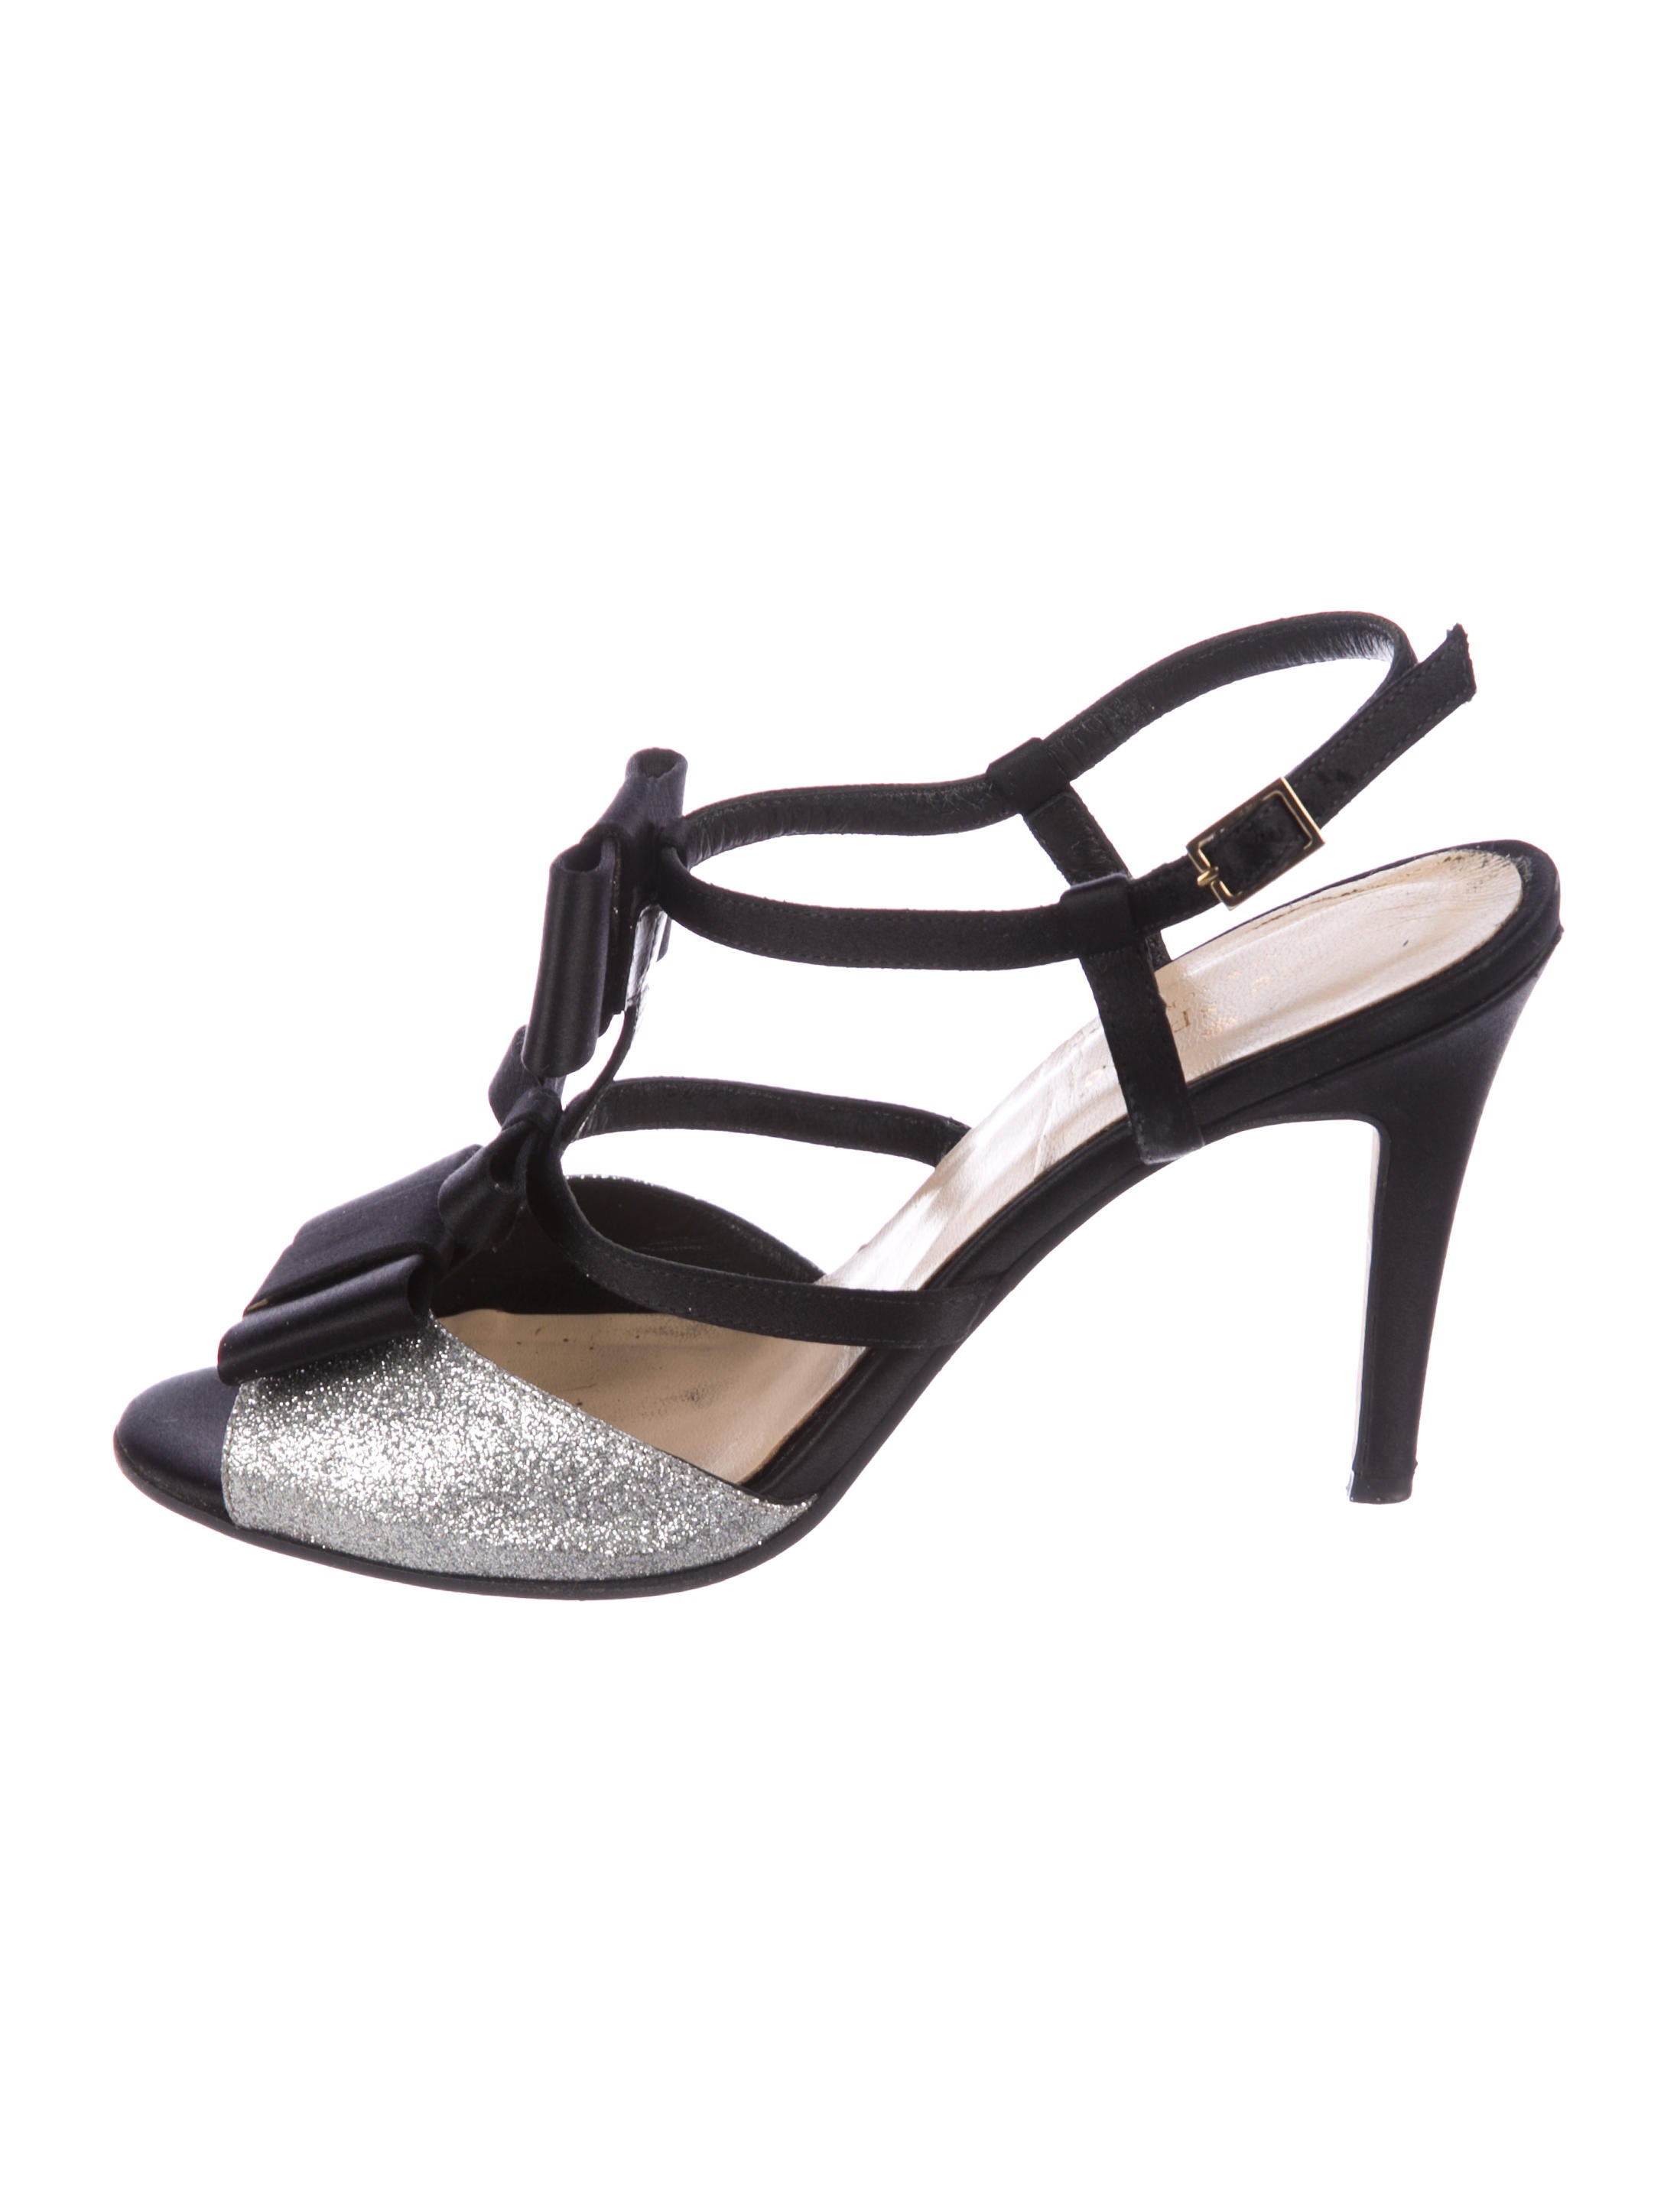 Kate Spade New York Satin Glitter-Accented Sandals find great outlet cheap cheap sale sast outlet online cost sale online YlMqARf7